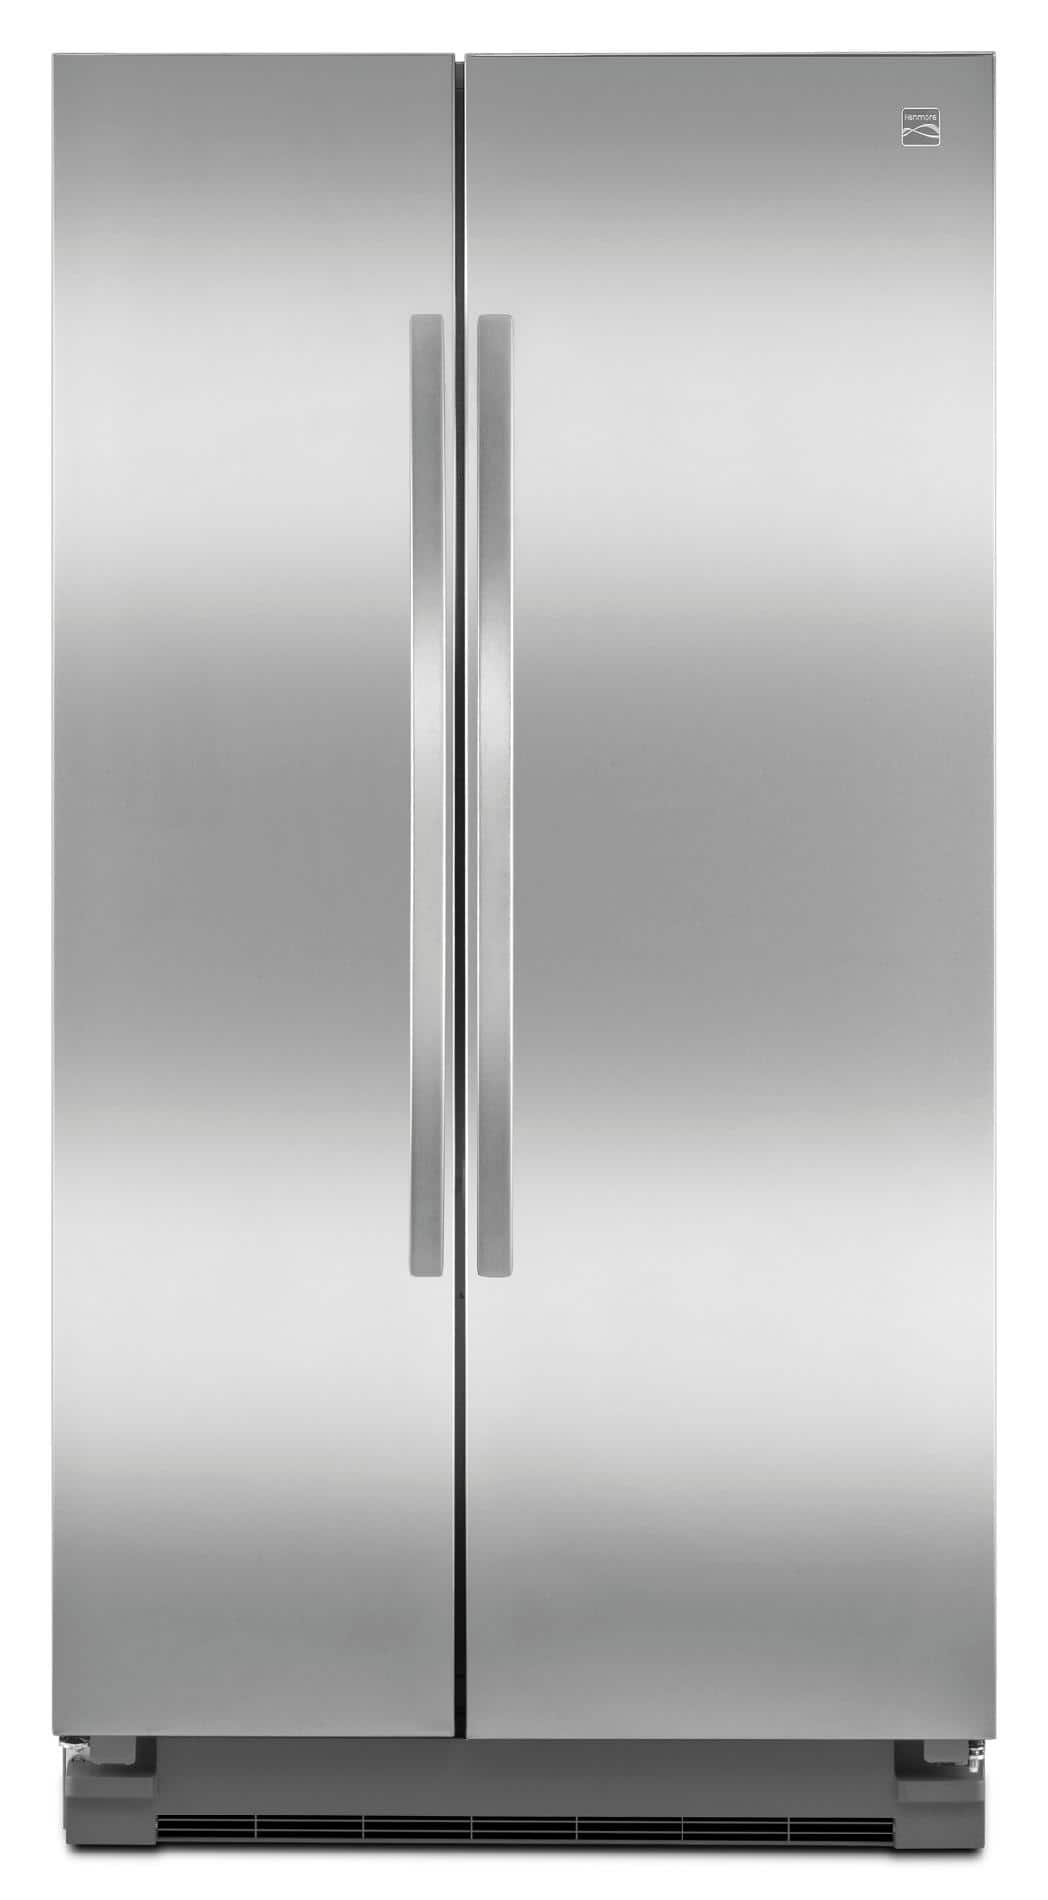 Kenmore 25.2 cu. ft. Side-by-Side Stainless Steel Refrigerator $799.99 w/ Free Delivery at Sears.com